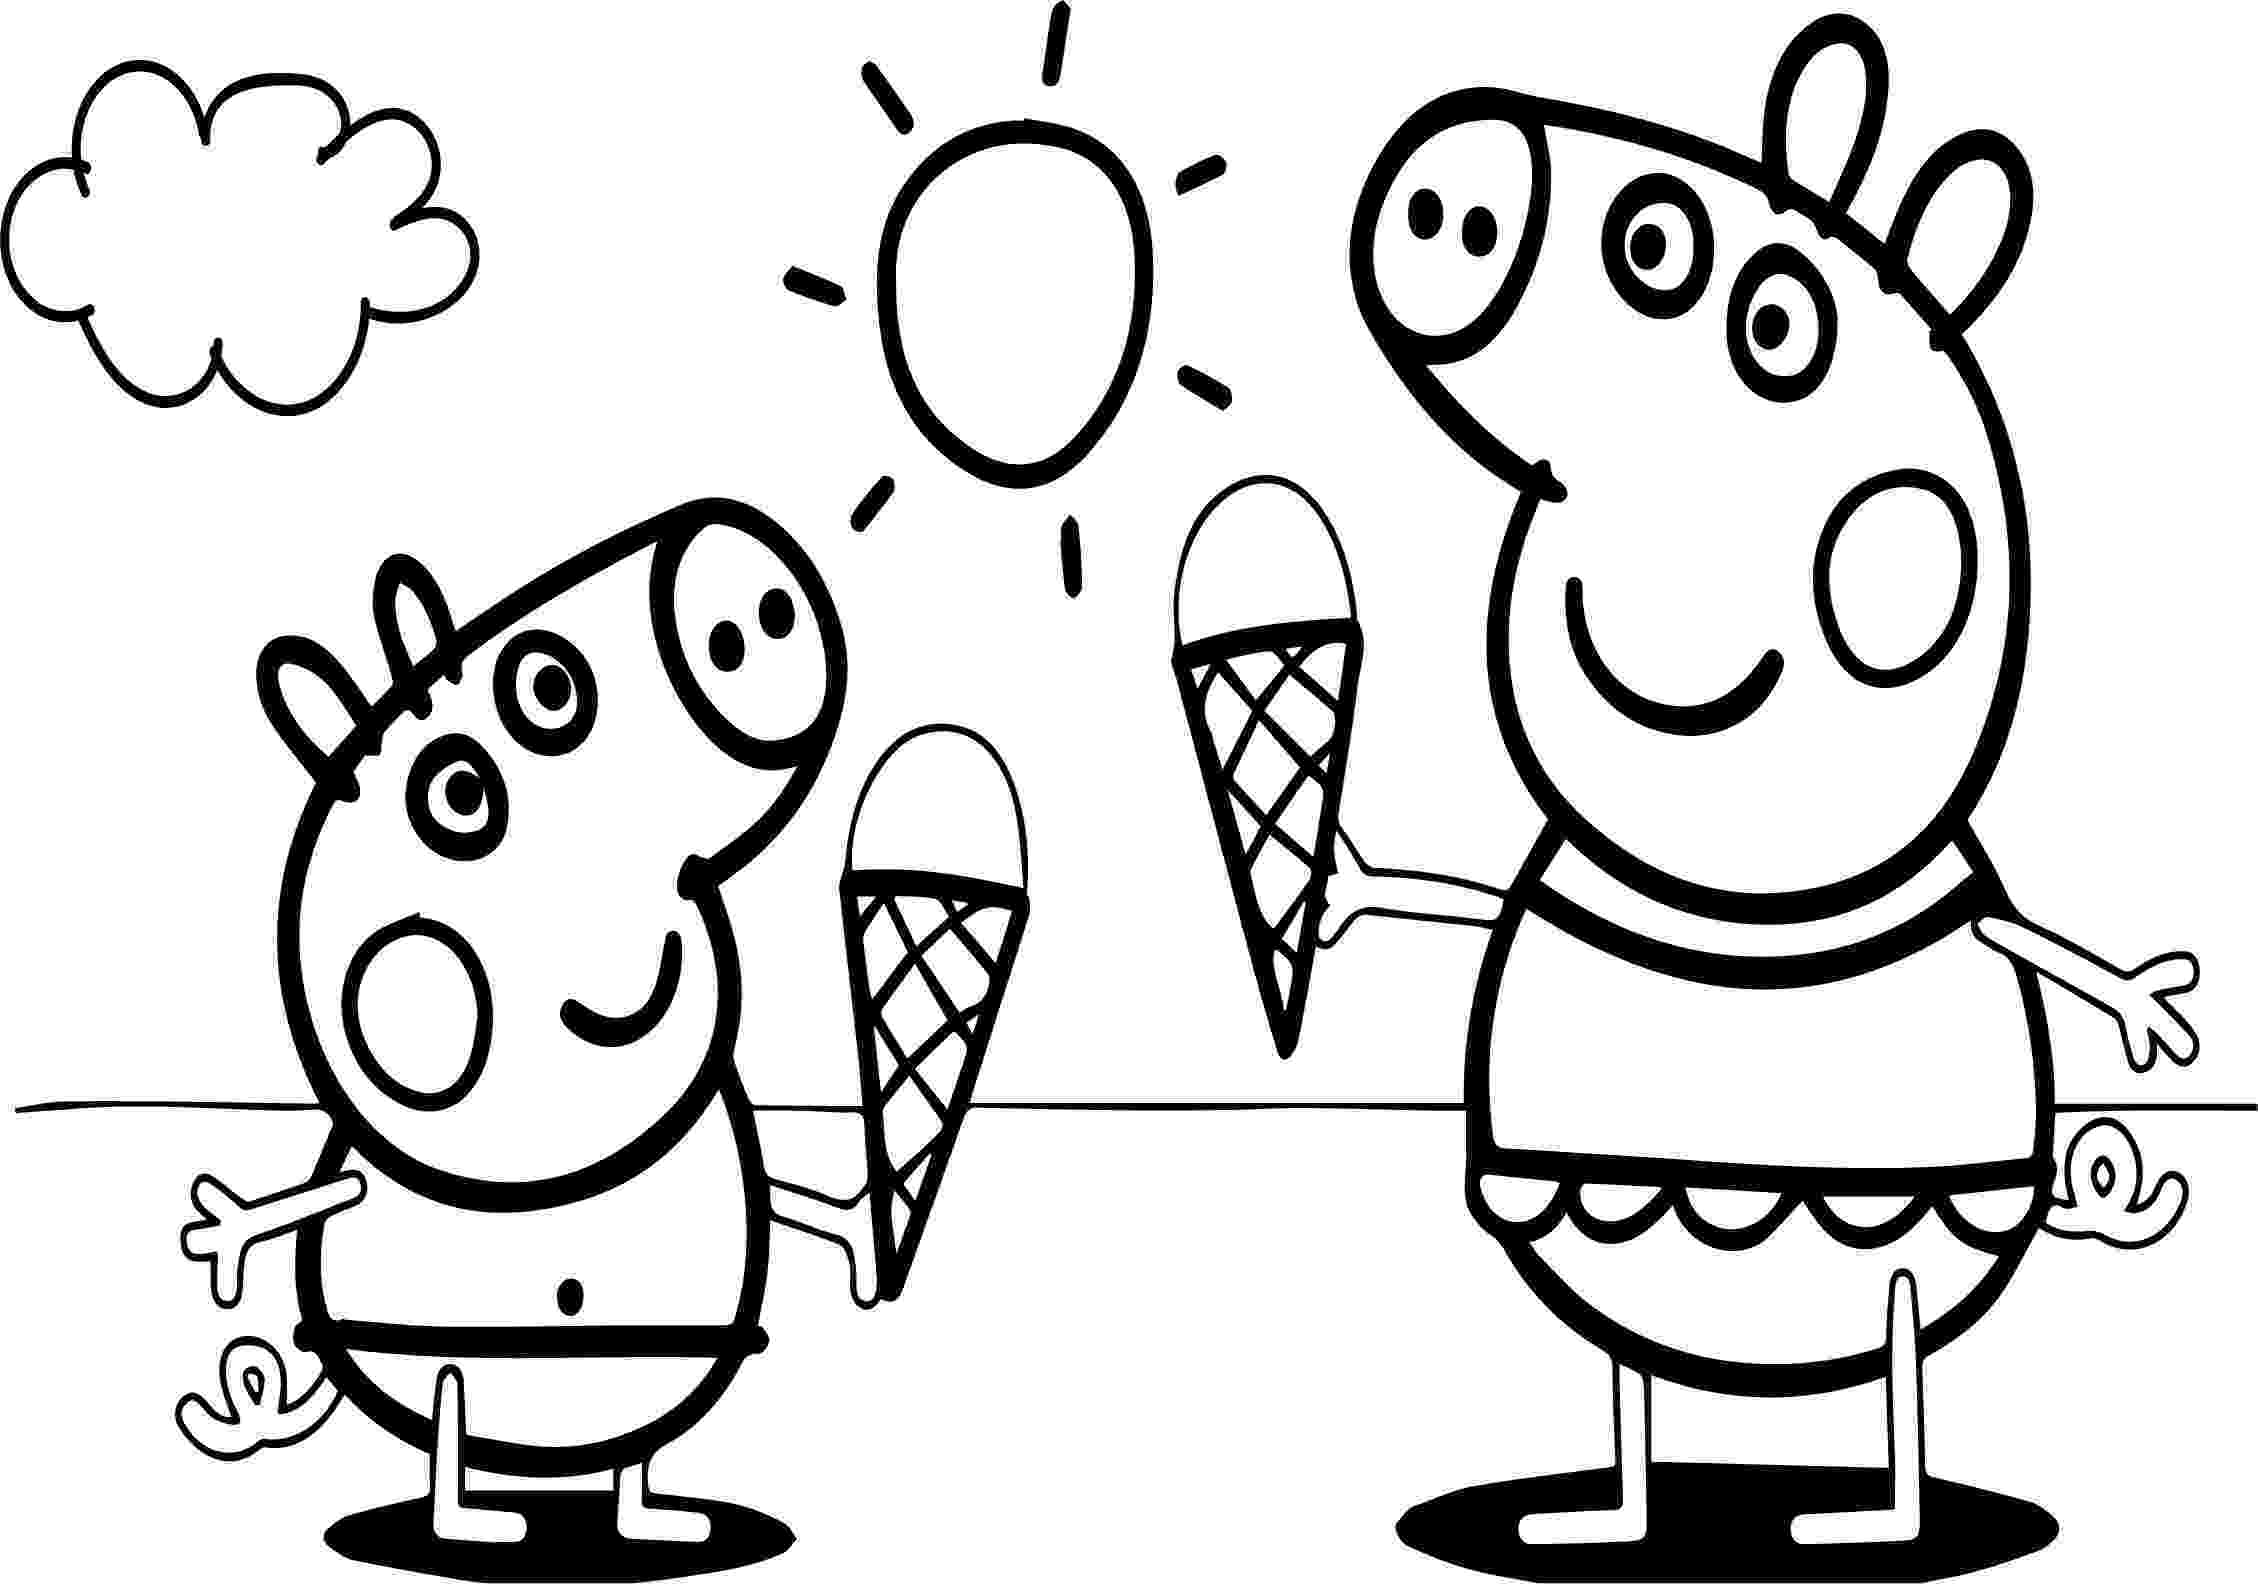 peppa pig color peppa pig family coloring pages coloring home peppa pig color